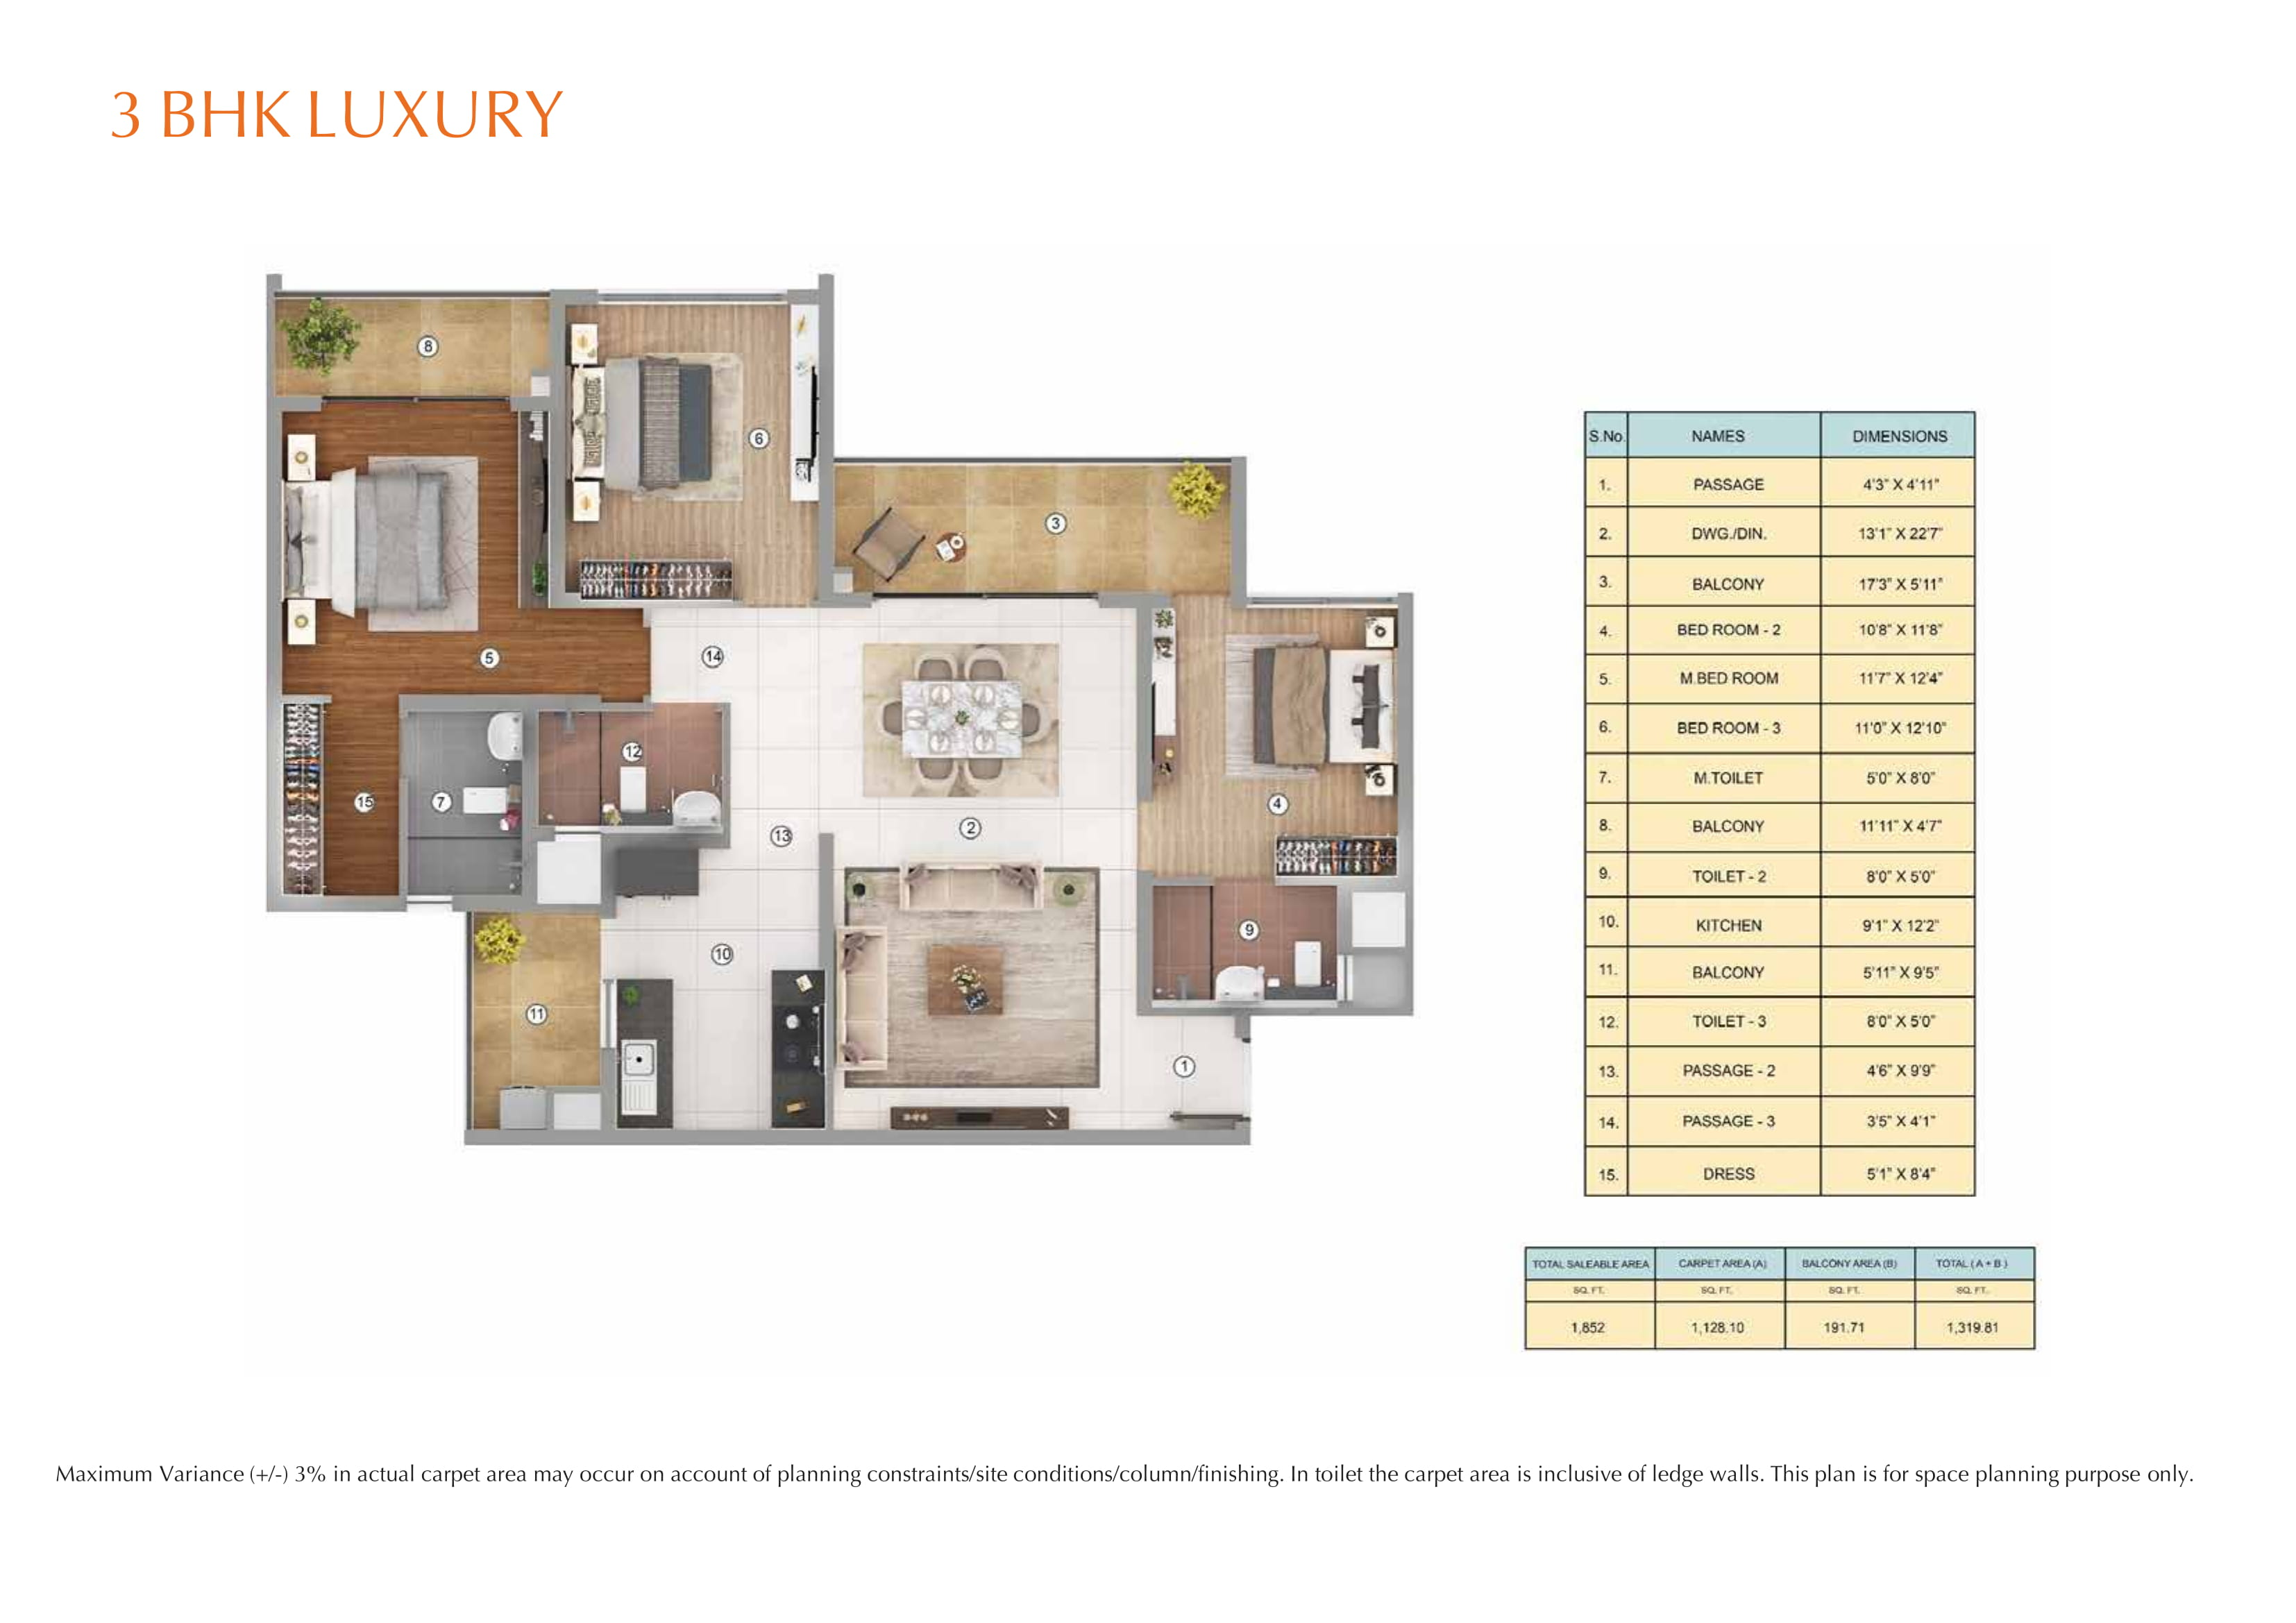 3BHK LURURY Layout Plan